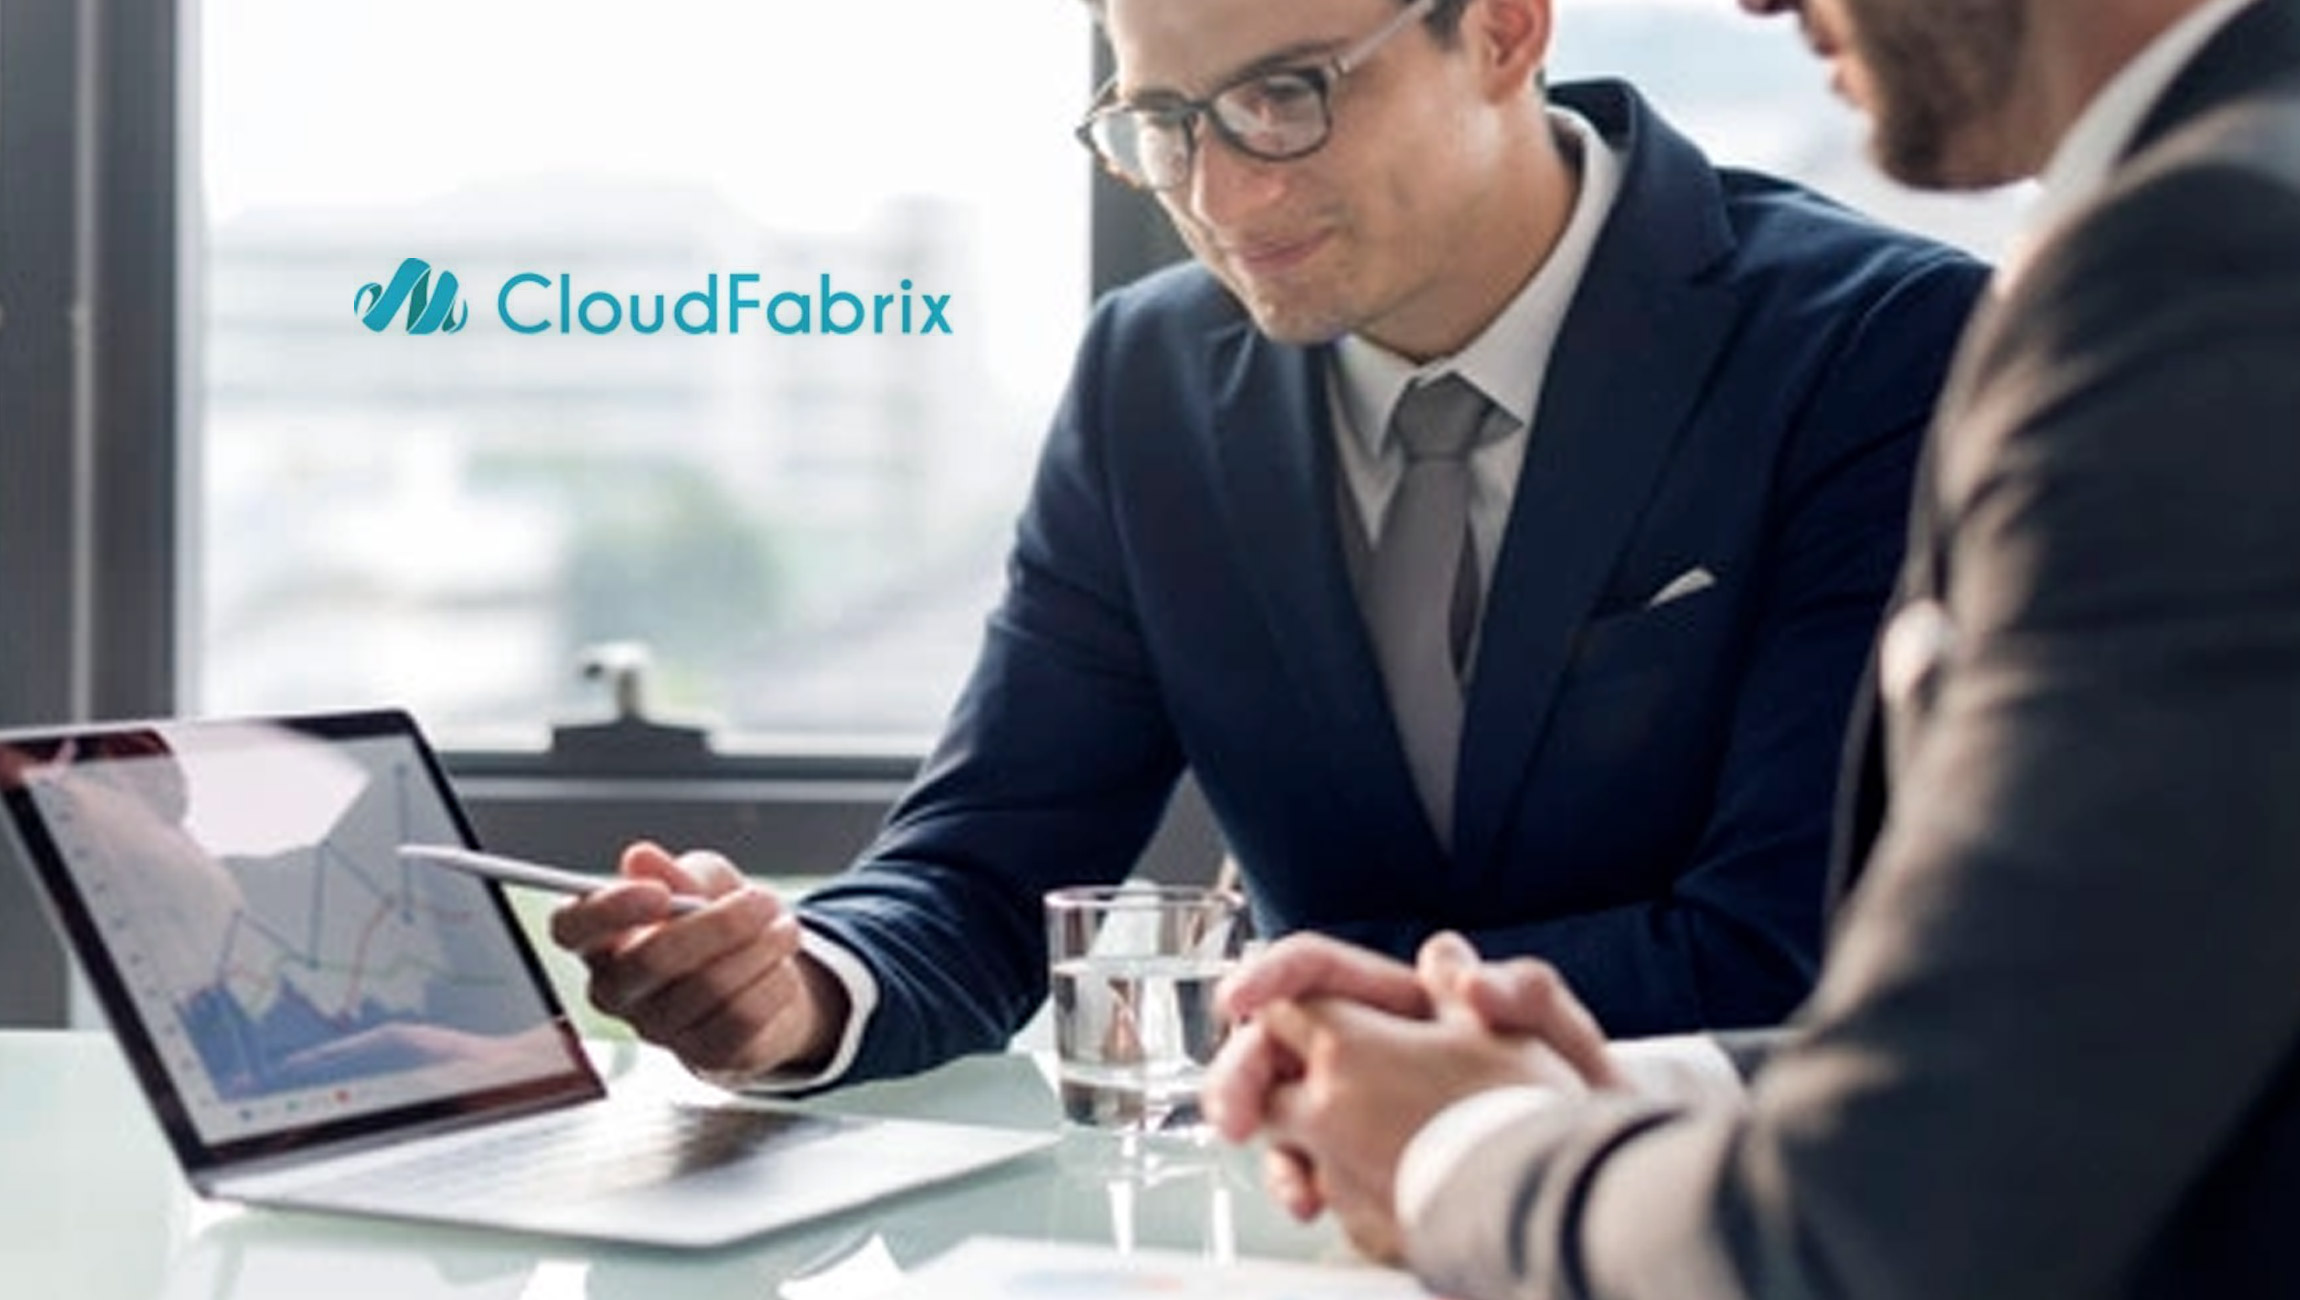 CloudFabrix is Recognized as a AIOps Leader and Fast Moving Innovator in GigaOm 2021 AIOps Radar Report